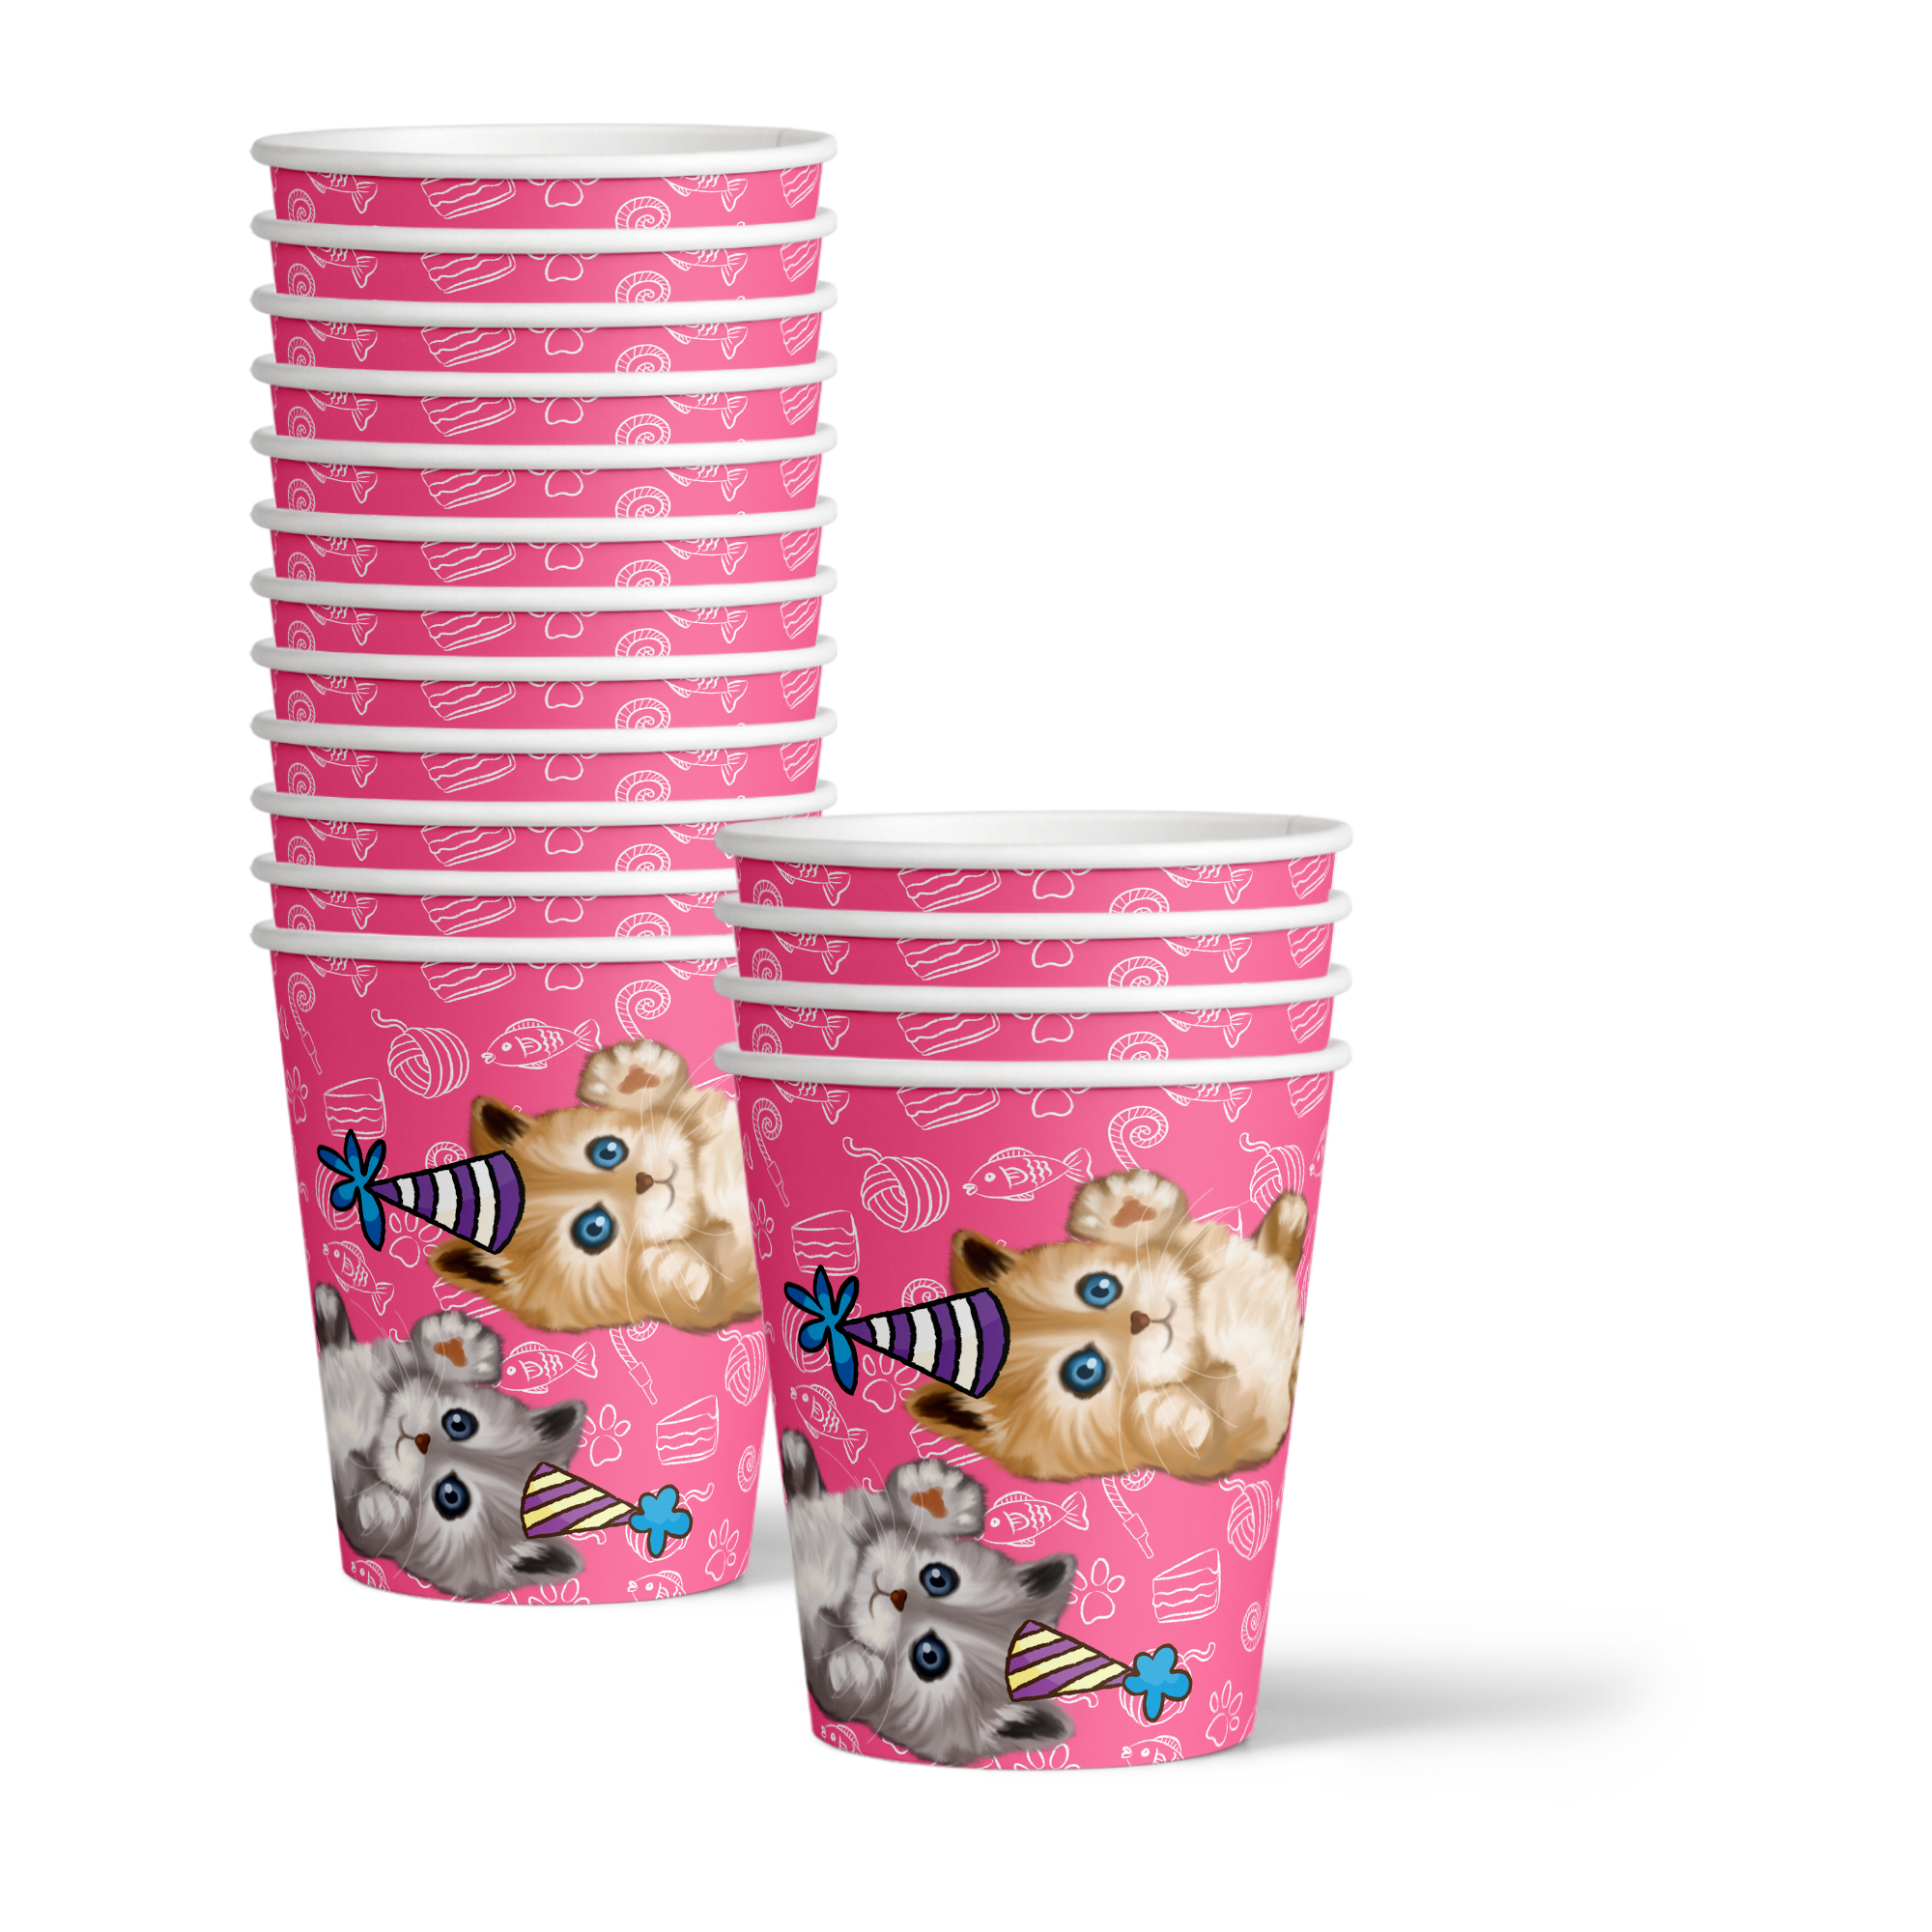 Kitty Cat Kitten Birthday Party Tableware Kit For 16 Guests